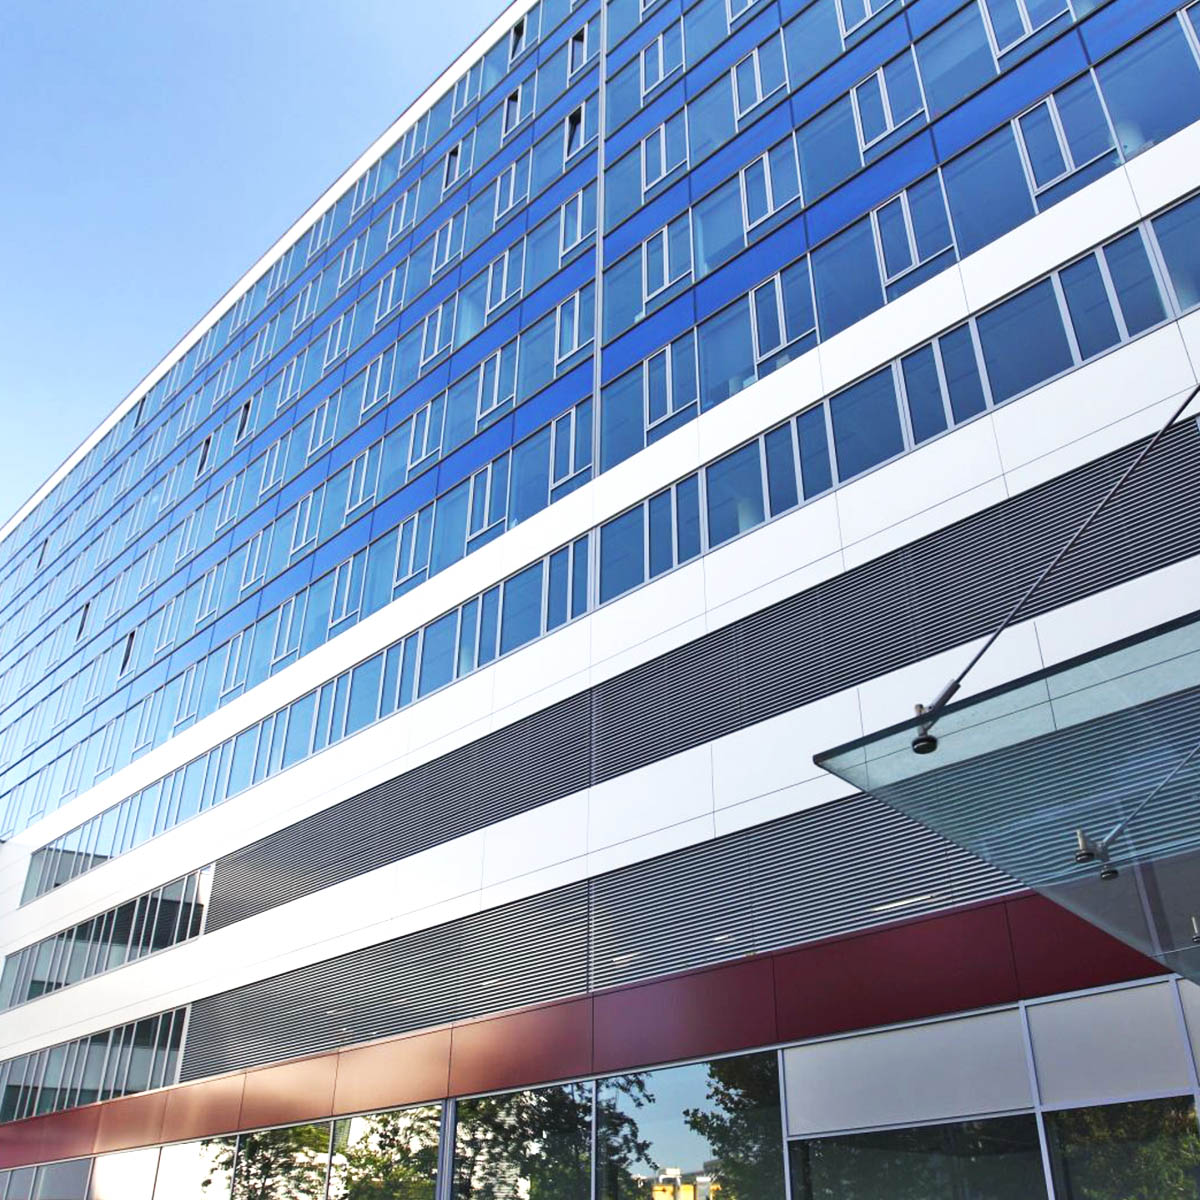 WOOD-Company-acquires-BBC-1-and-BBC-1-Plus-office-buildings-from-Austrian-real-estate-group-CA-Immo